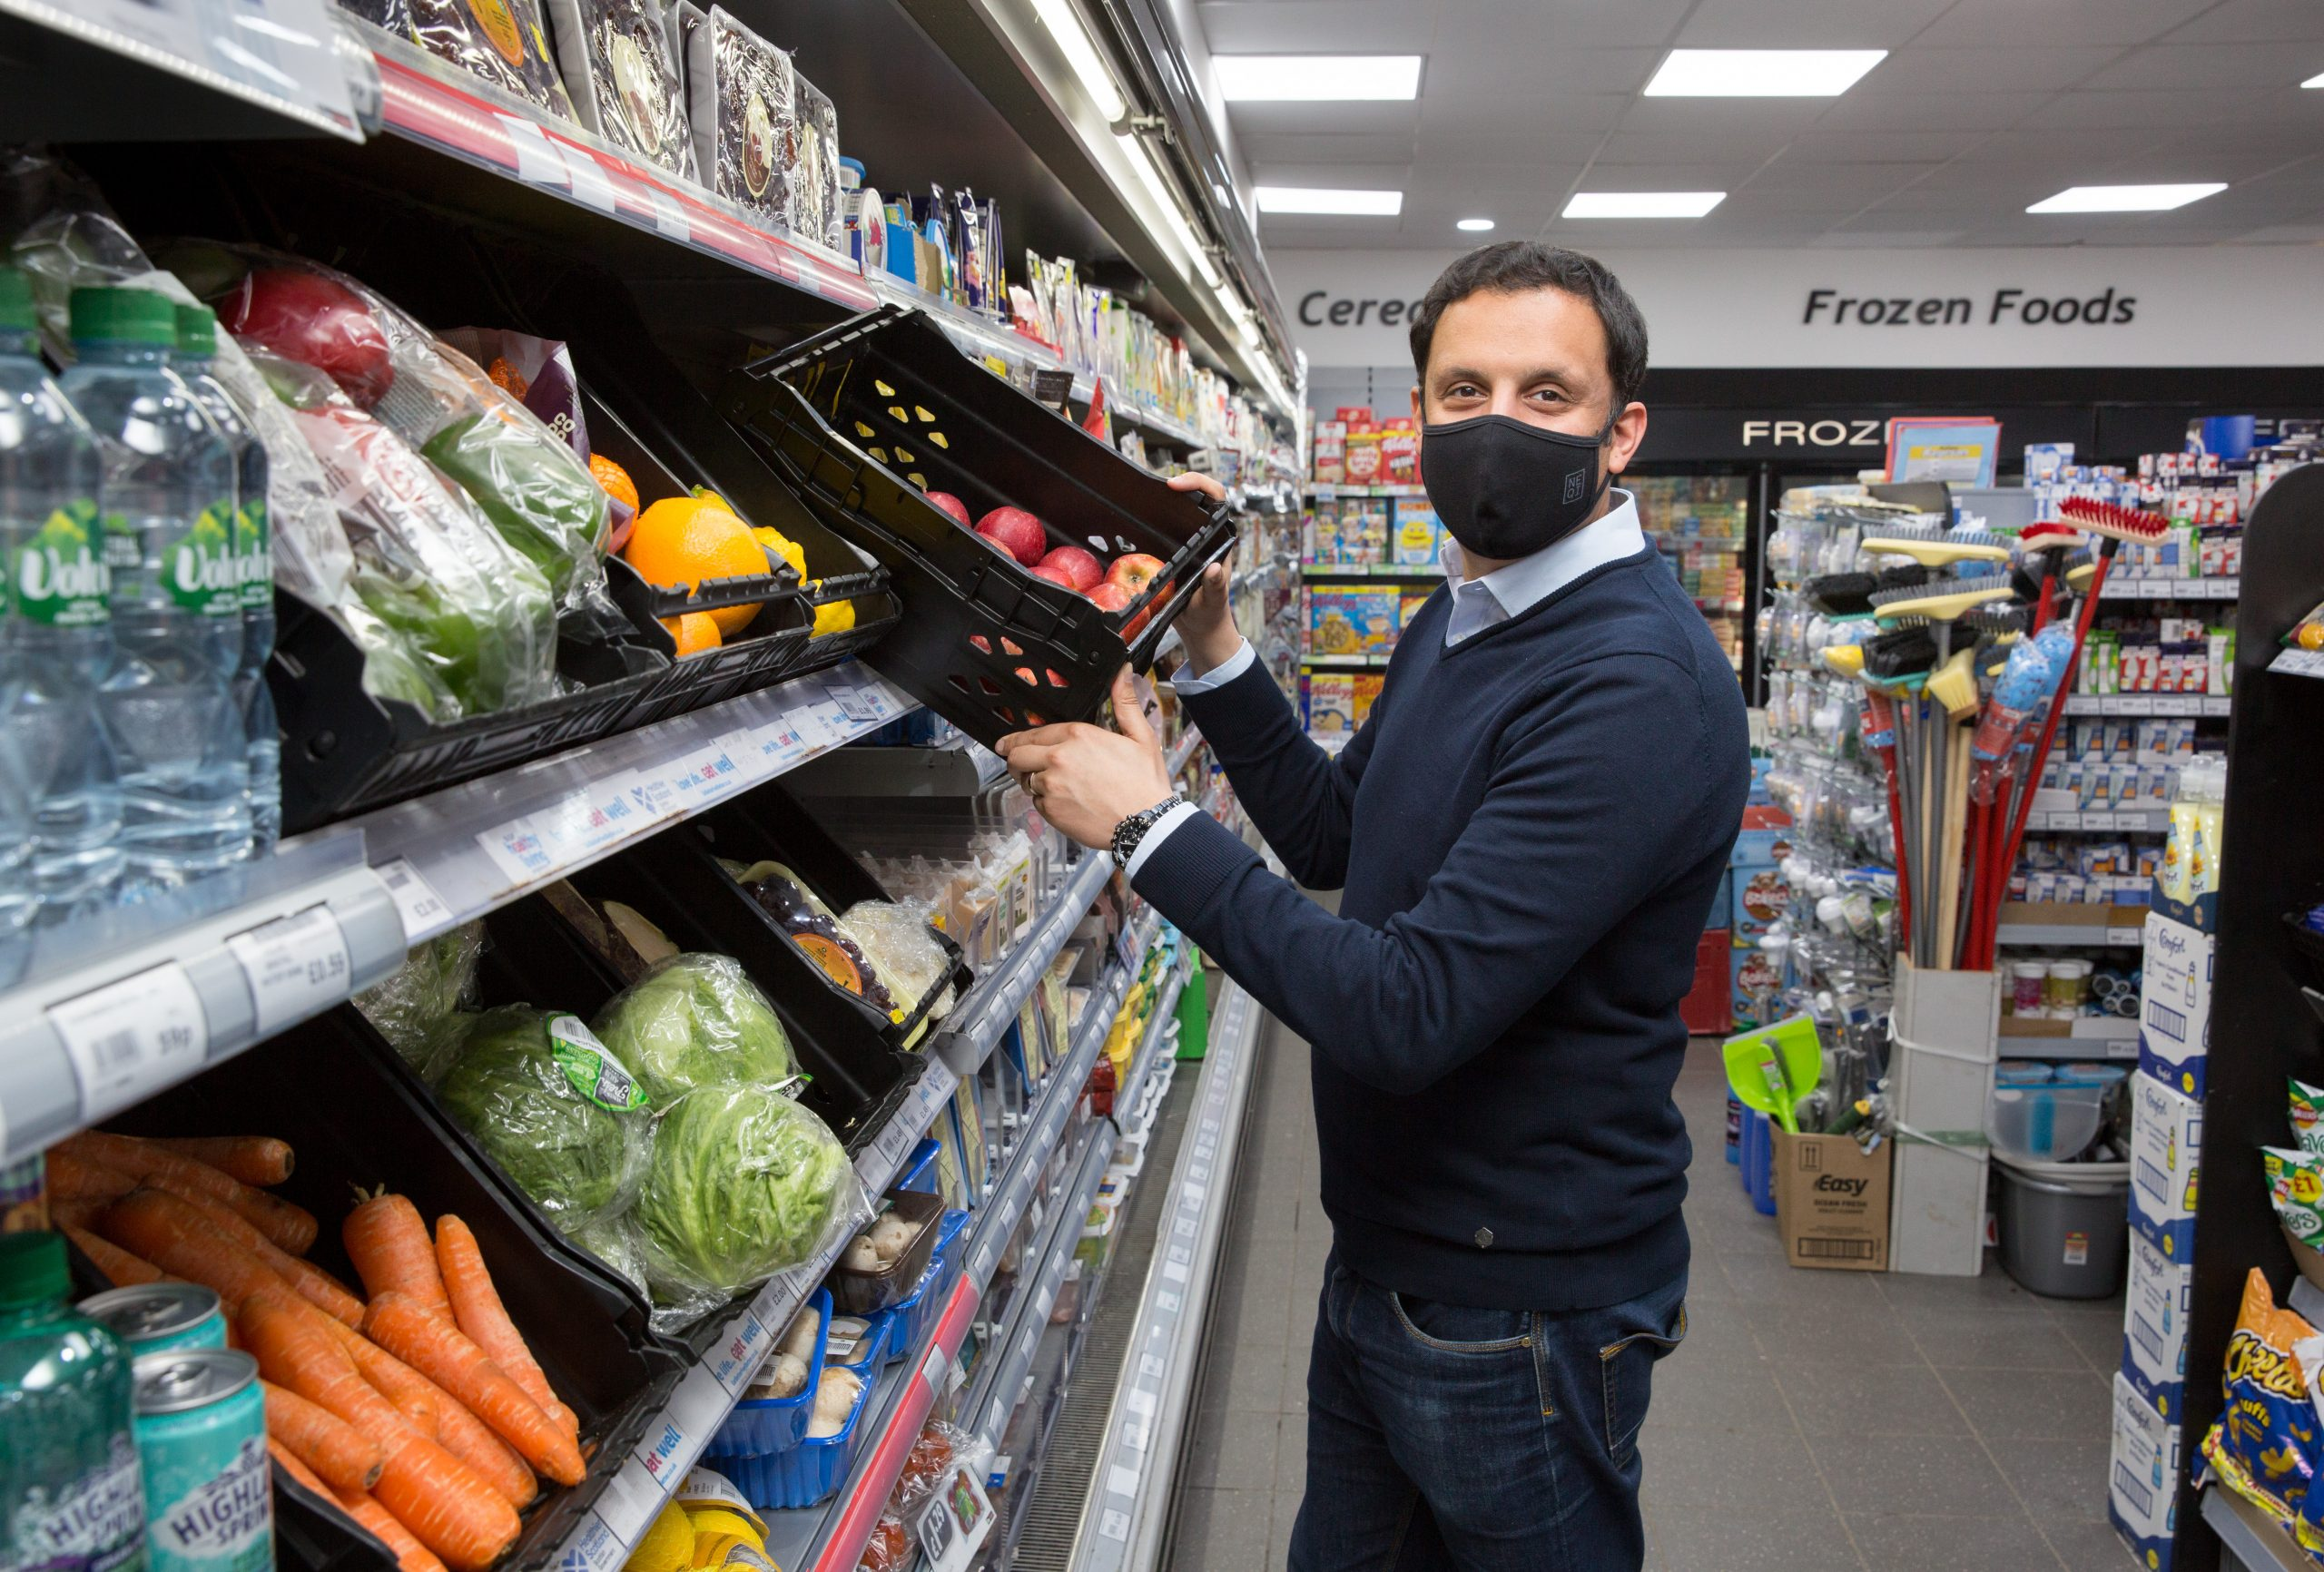 Scots politicians: independent retailers need action to protect from crime